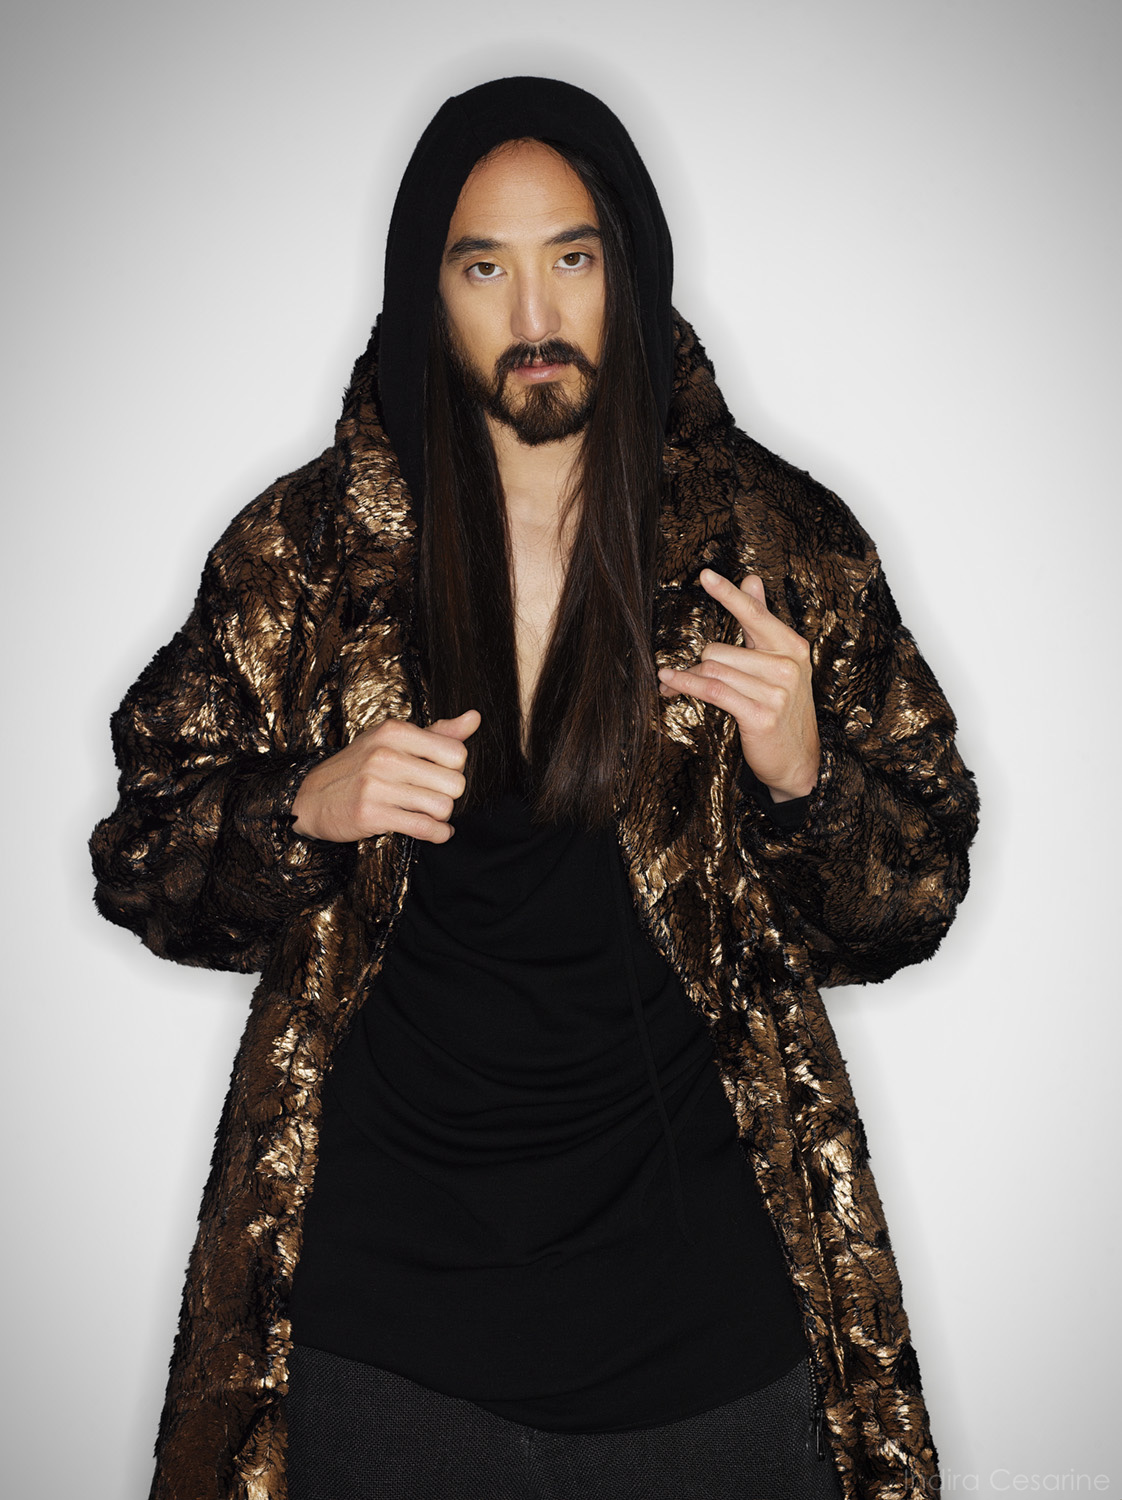 Steve-Aoki-The-Untitled-Magazine-Photography-by-Indira-Cesarine-002.jpg